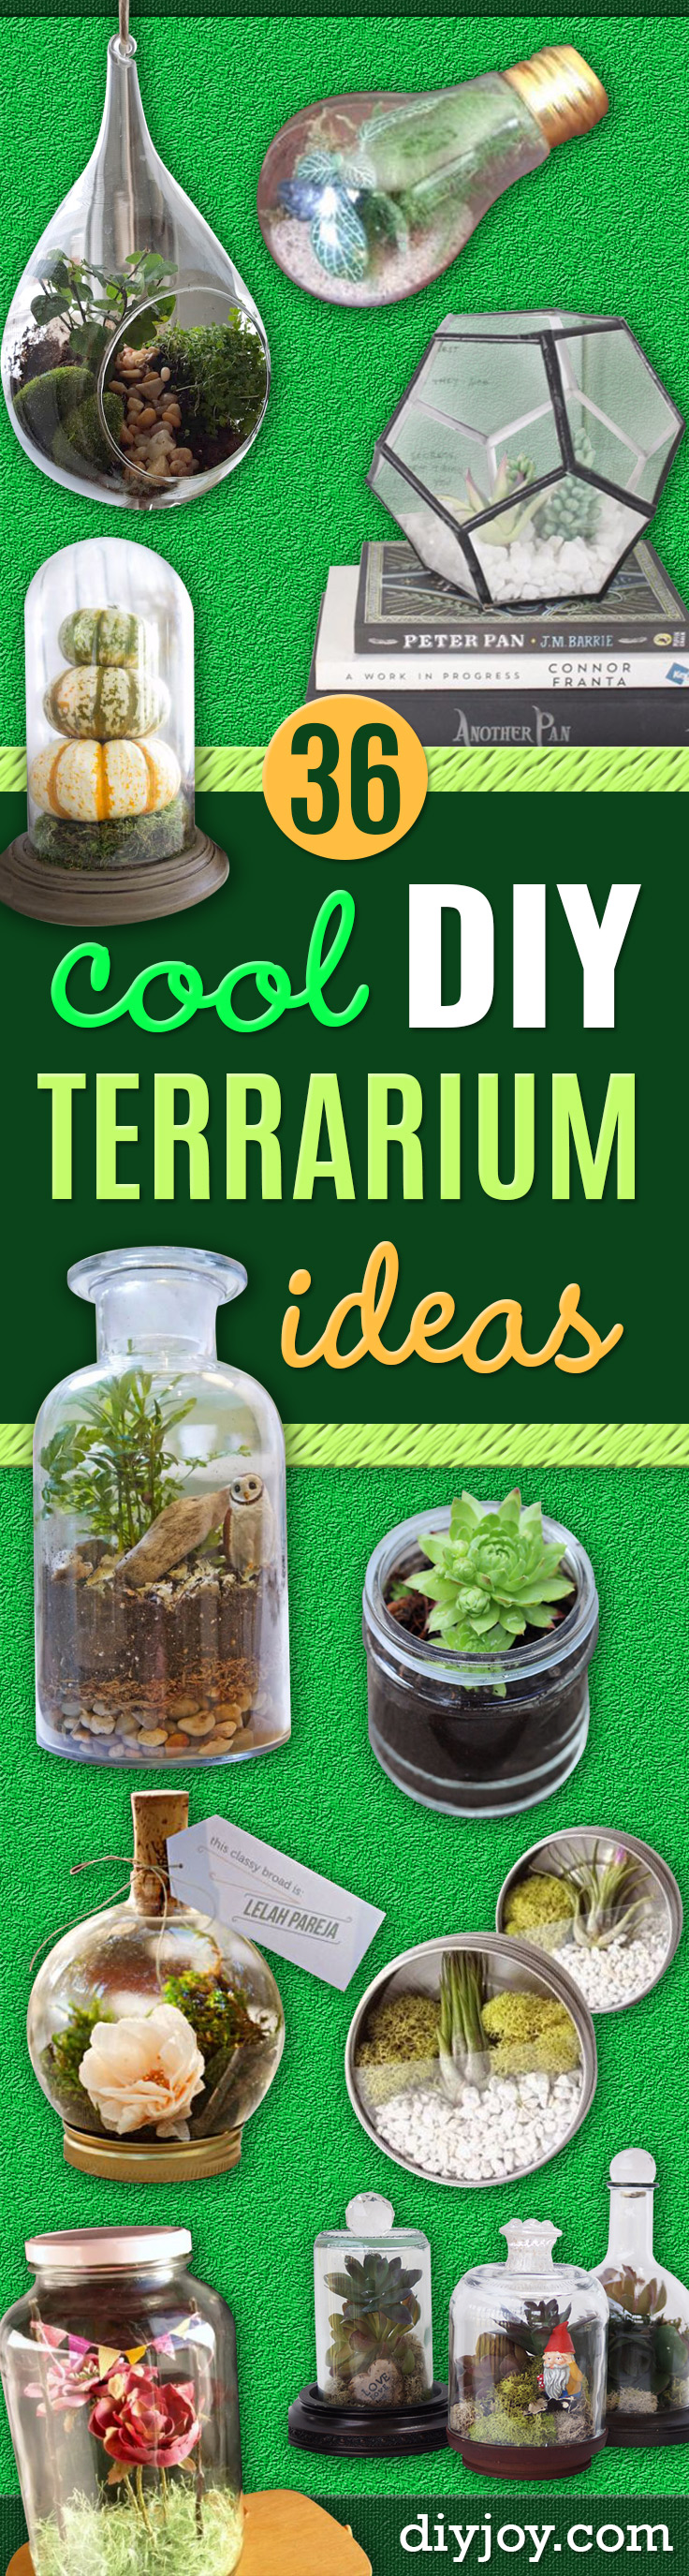 DIY Terrarium Ideas - Cool Terrariums and Crafts With Mason Jars, Succulents, Wood, Geometric Designs and Reptile, Acquarium - Easy DIY Terrariums for Adults and Kids To Make at Home http://diyjoy.com/diy-terrarium-ideas